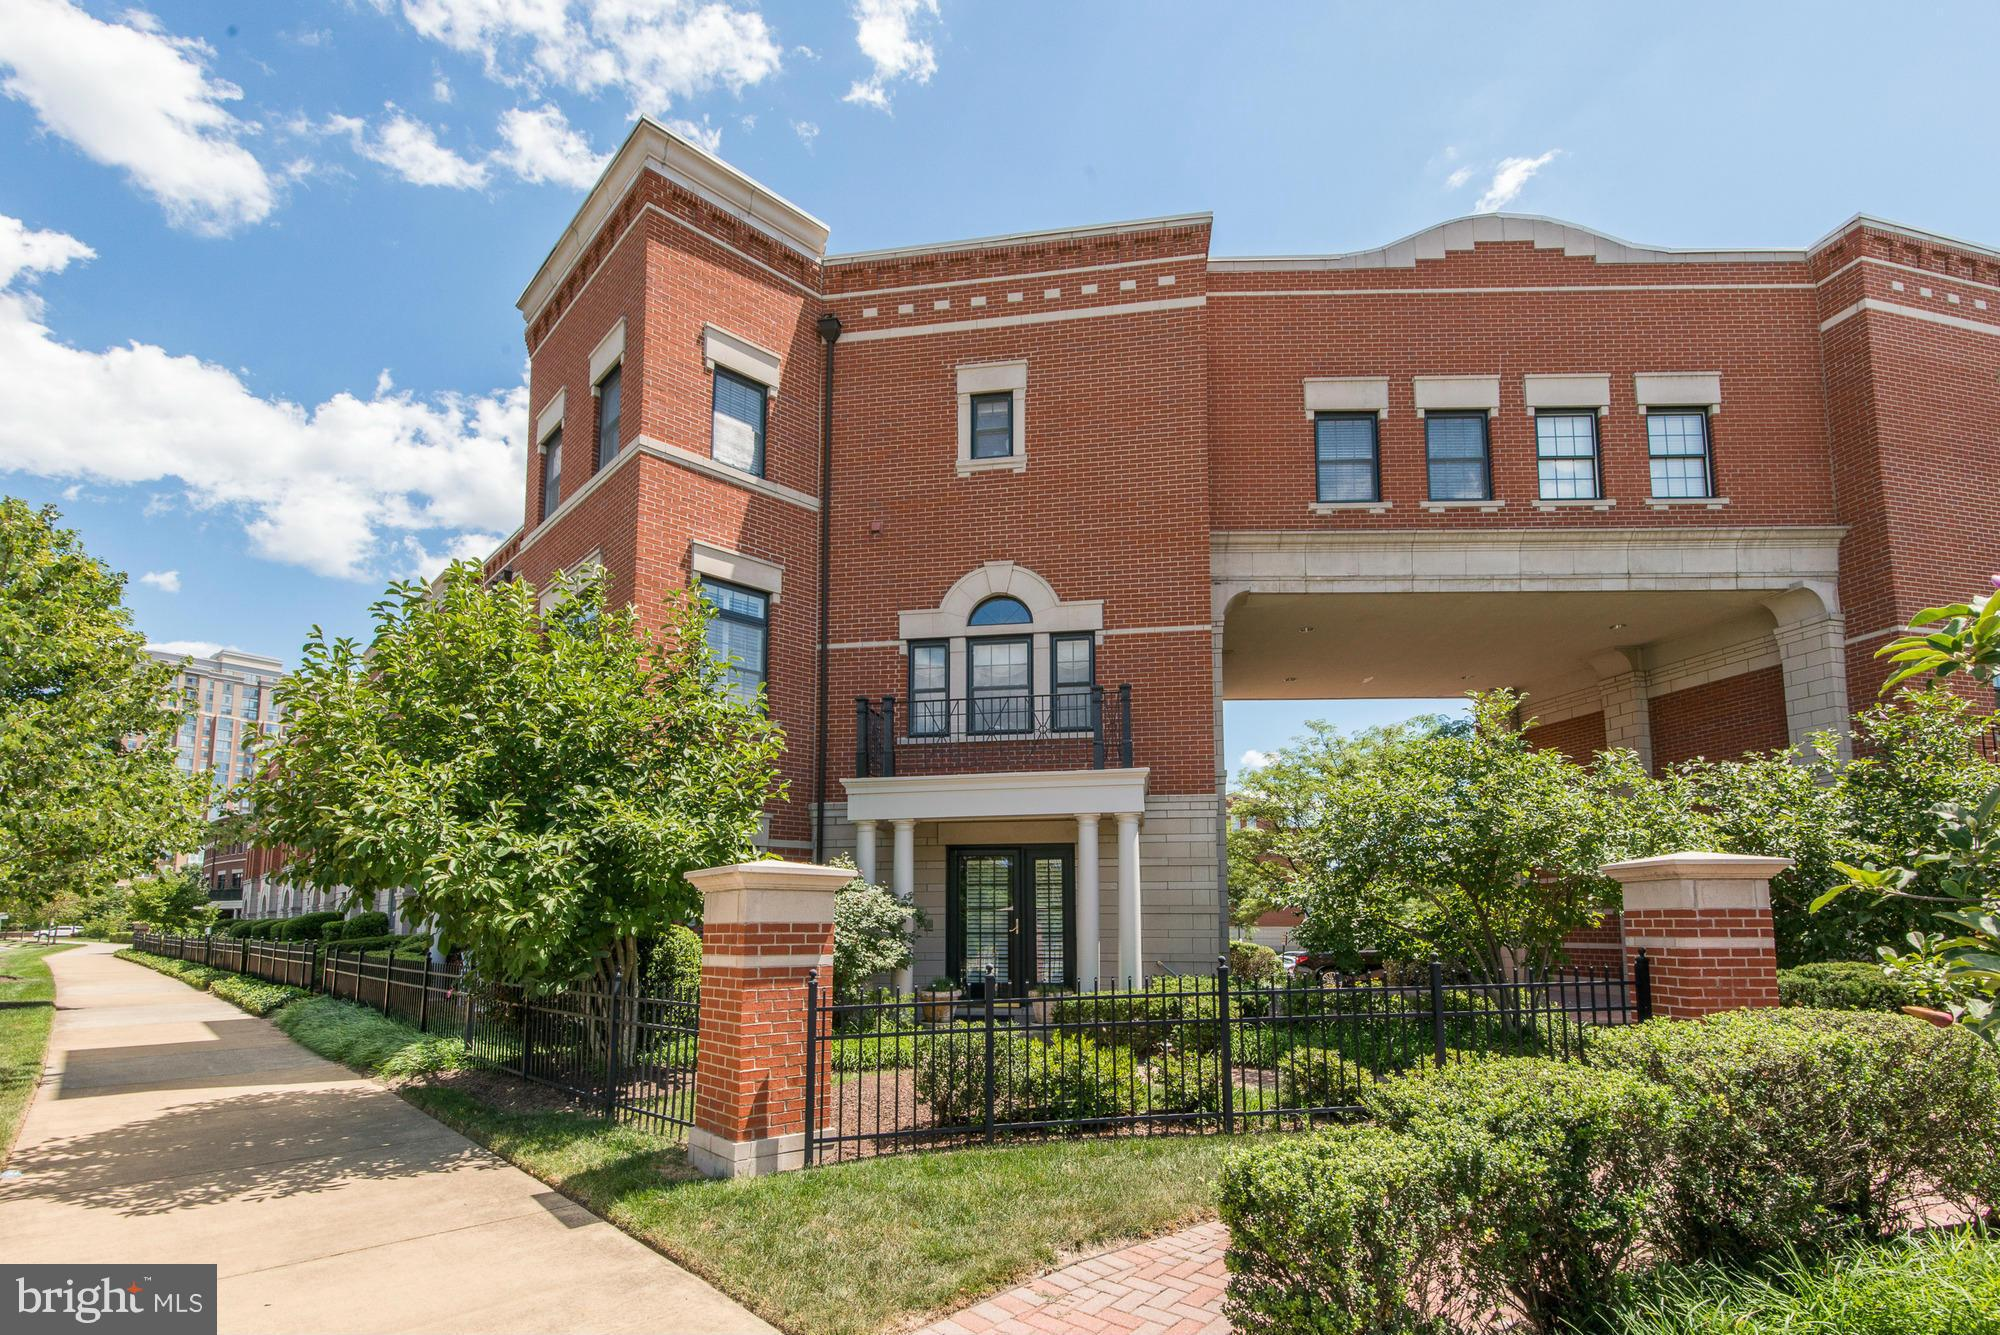 For your MOST discerning client!  Open! Sun filled! 3 Levels of HIGH-END remodel! Dramatic Accents: volute staircase, glass tile surround Fireplaces,REMODELED BATHS! STUNNING custom designed/remodeled Kit/Great Rm w/expanded granite cntr isld/brkfst bar, incredible quartz backsplash, butler's pantry+desk! Fabulous Master Bedroom Suite w/SITTING RM! Family Room w/French doors to separate office/4th Bedroom. Walk to Reston Town Center. Lease term 12-36 months.